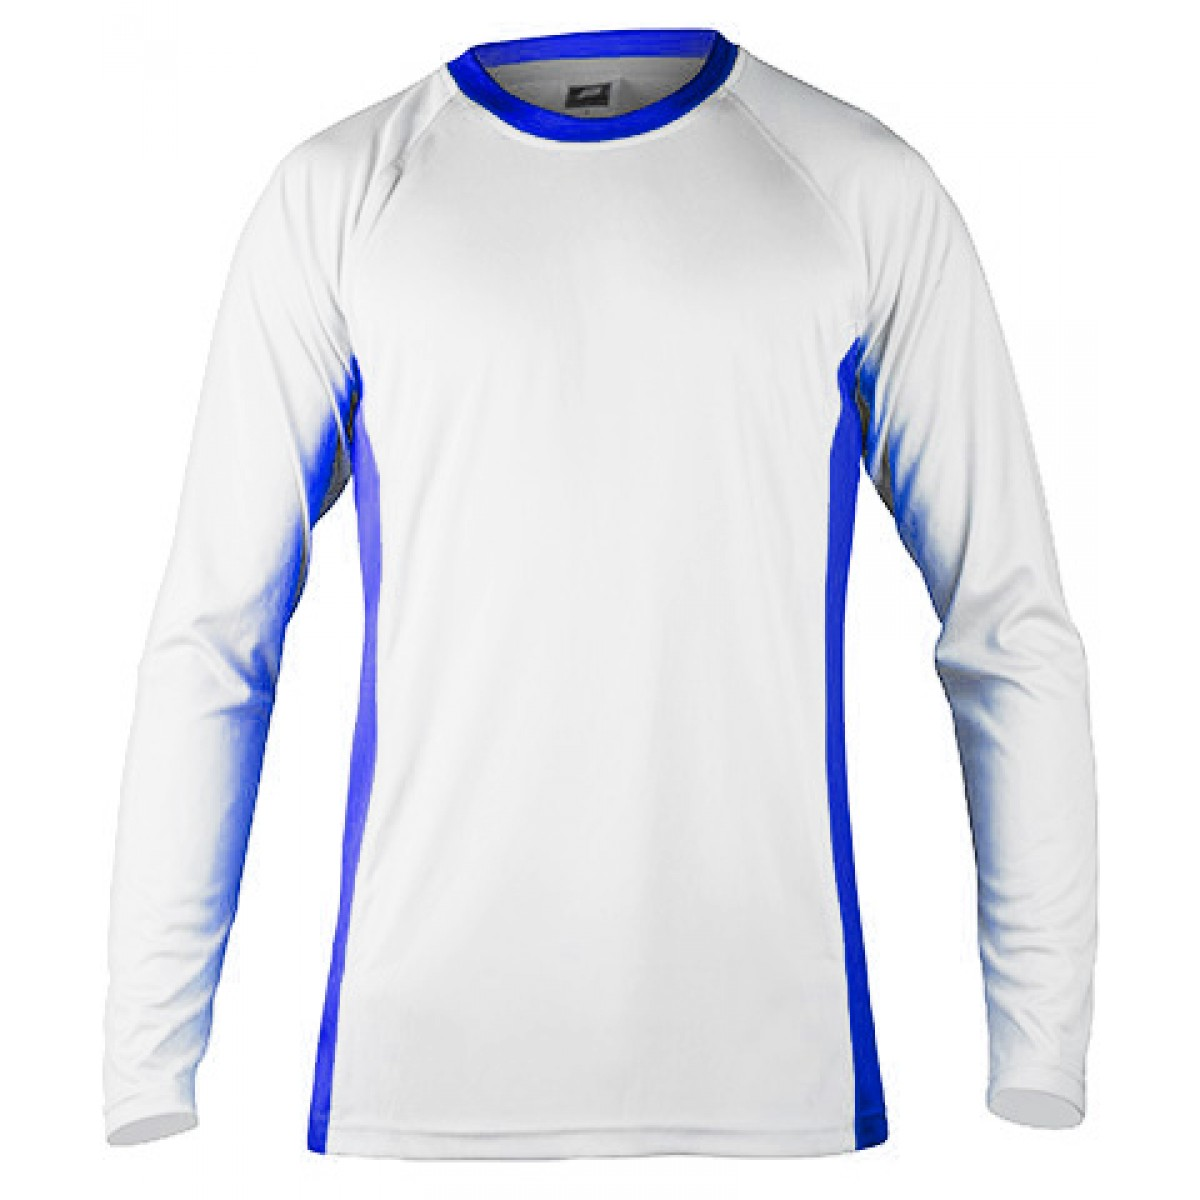 Long Sleeves Performance With Side Insert-White/Blue-2XL